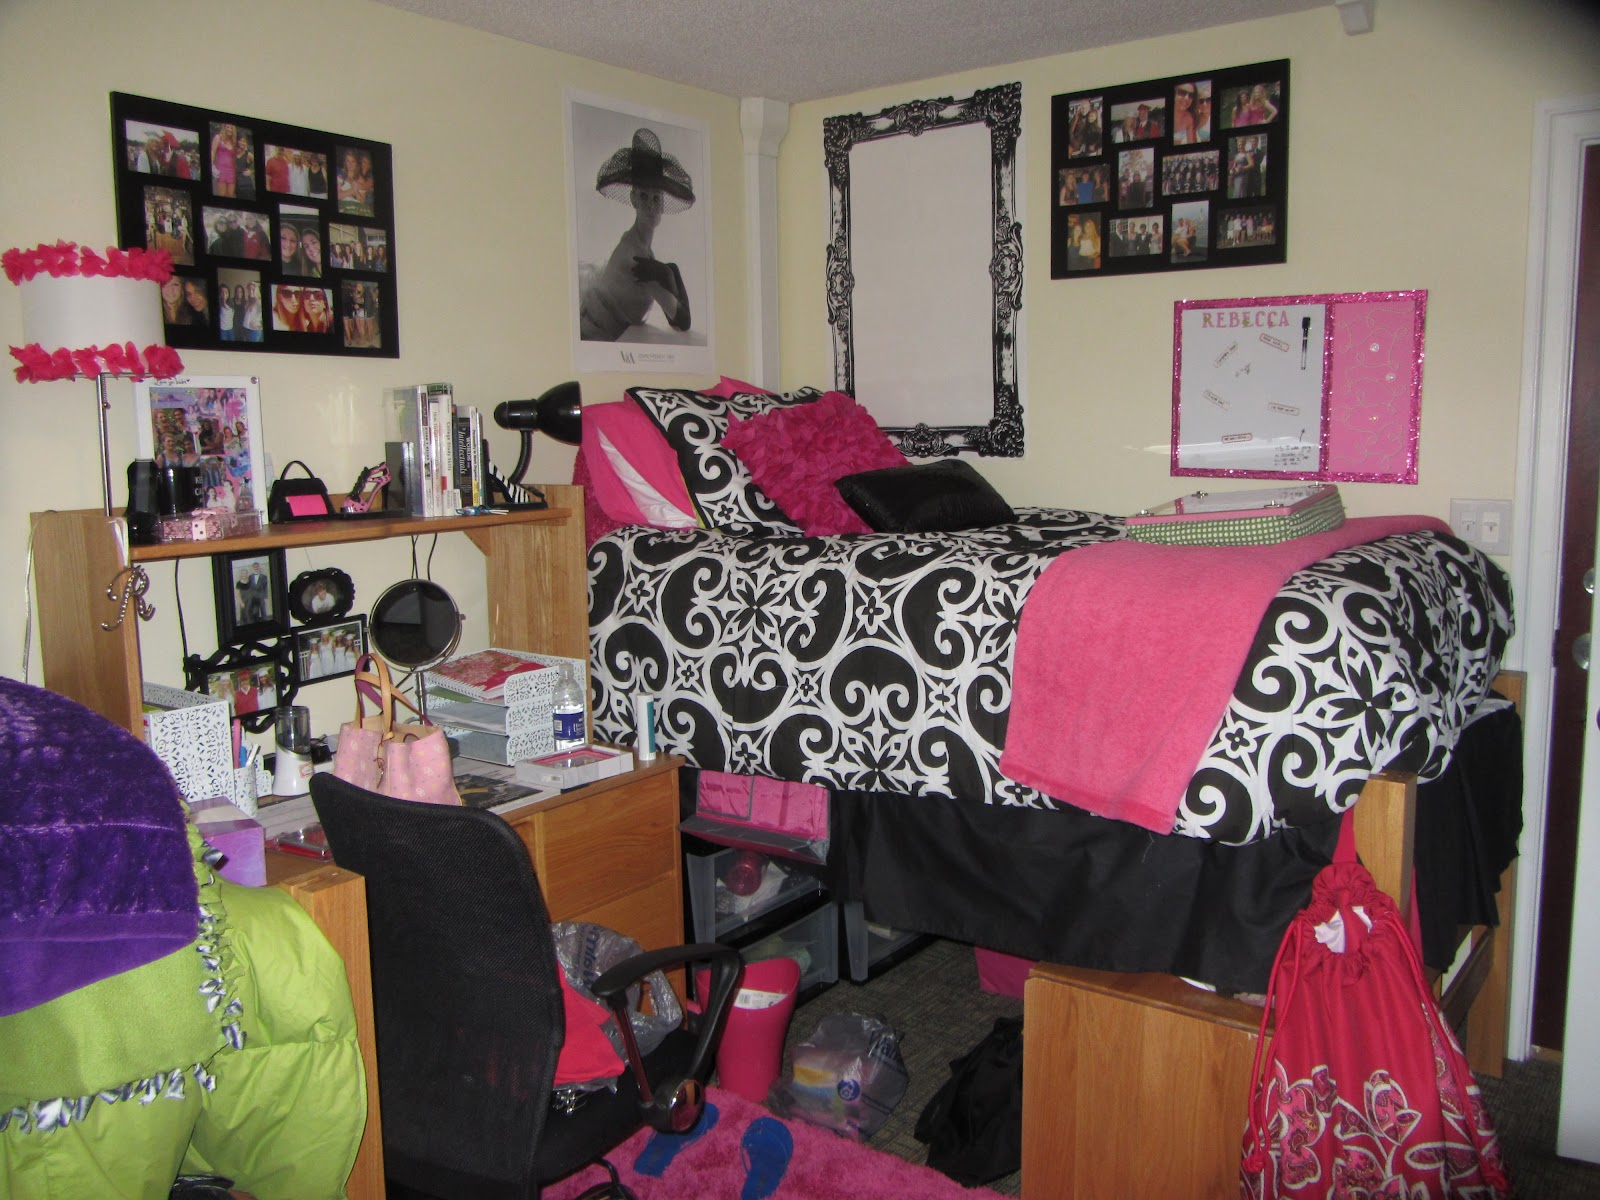 Dorm Room Decorating Ideas Photos Cute Ways To Decorate Your Bed 1600x1200 Wallpaper Teahub Io